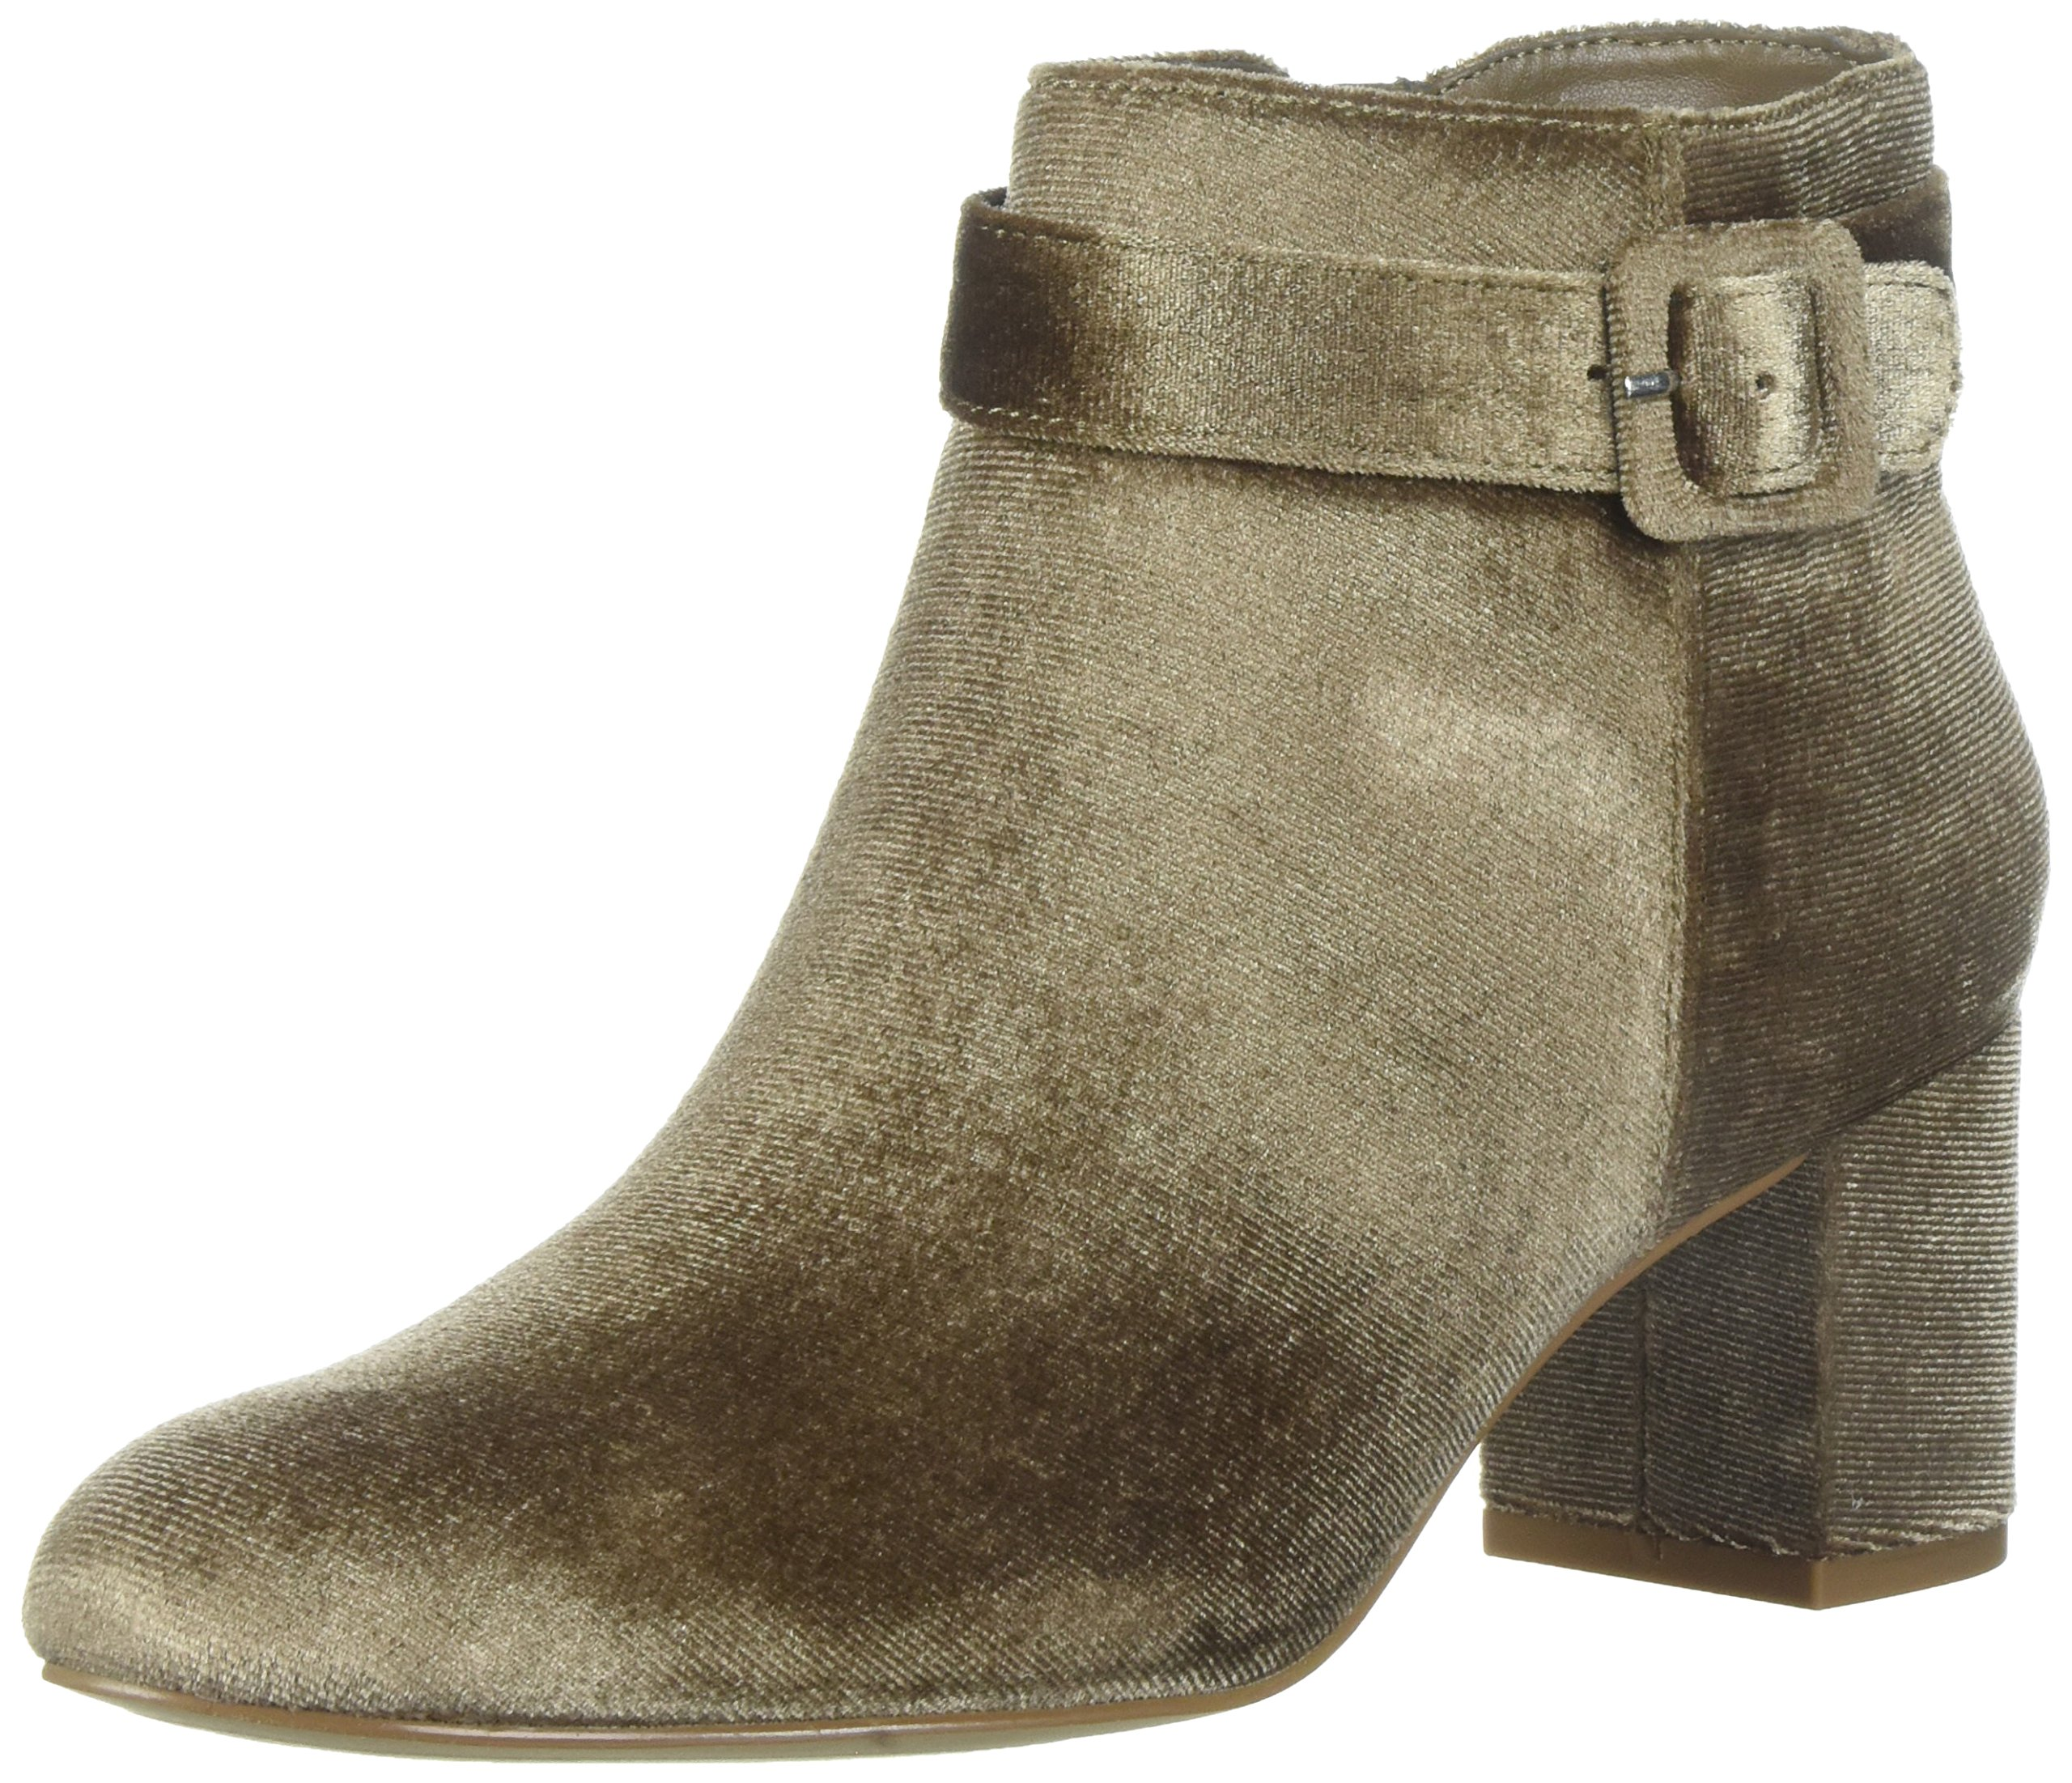 Style by Charles David Women's Edward Fashion Boot, Nude, 8.5 M US